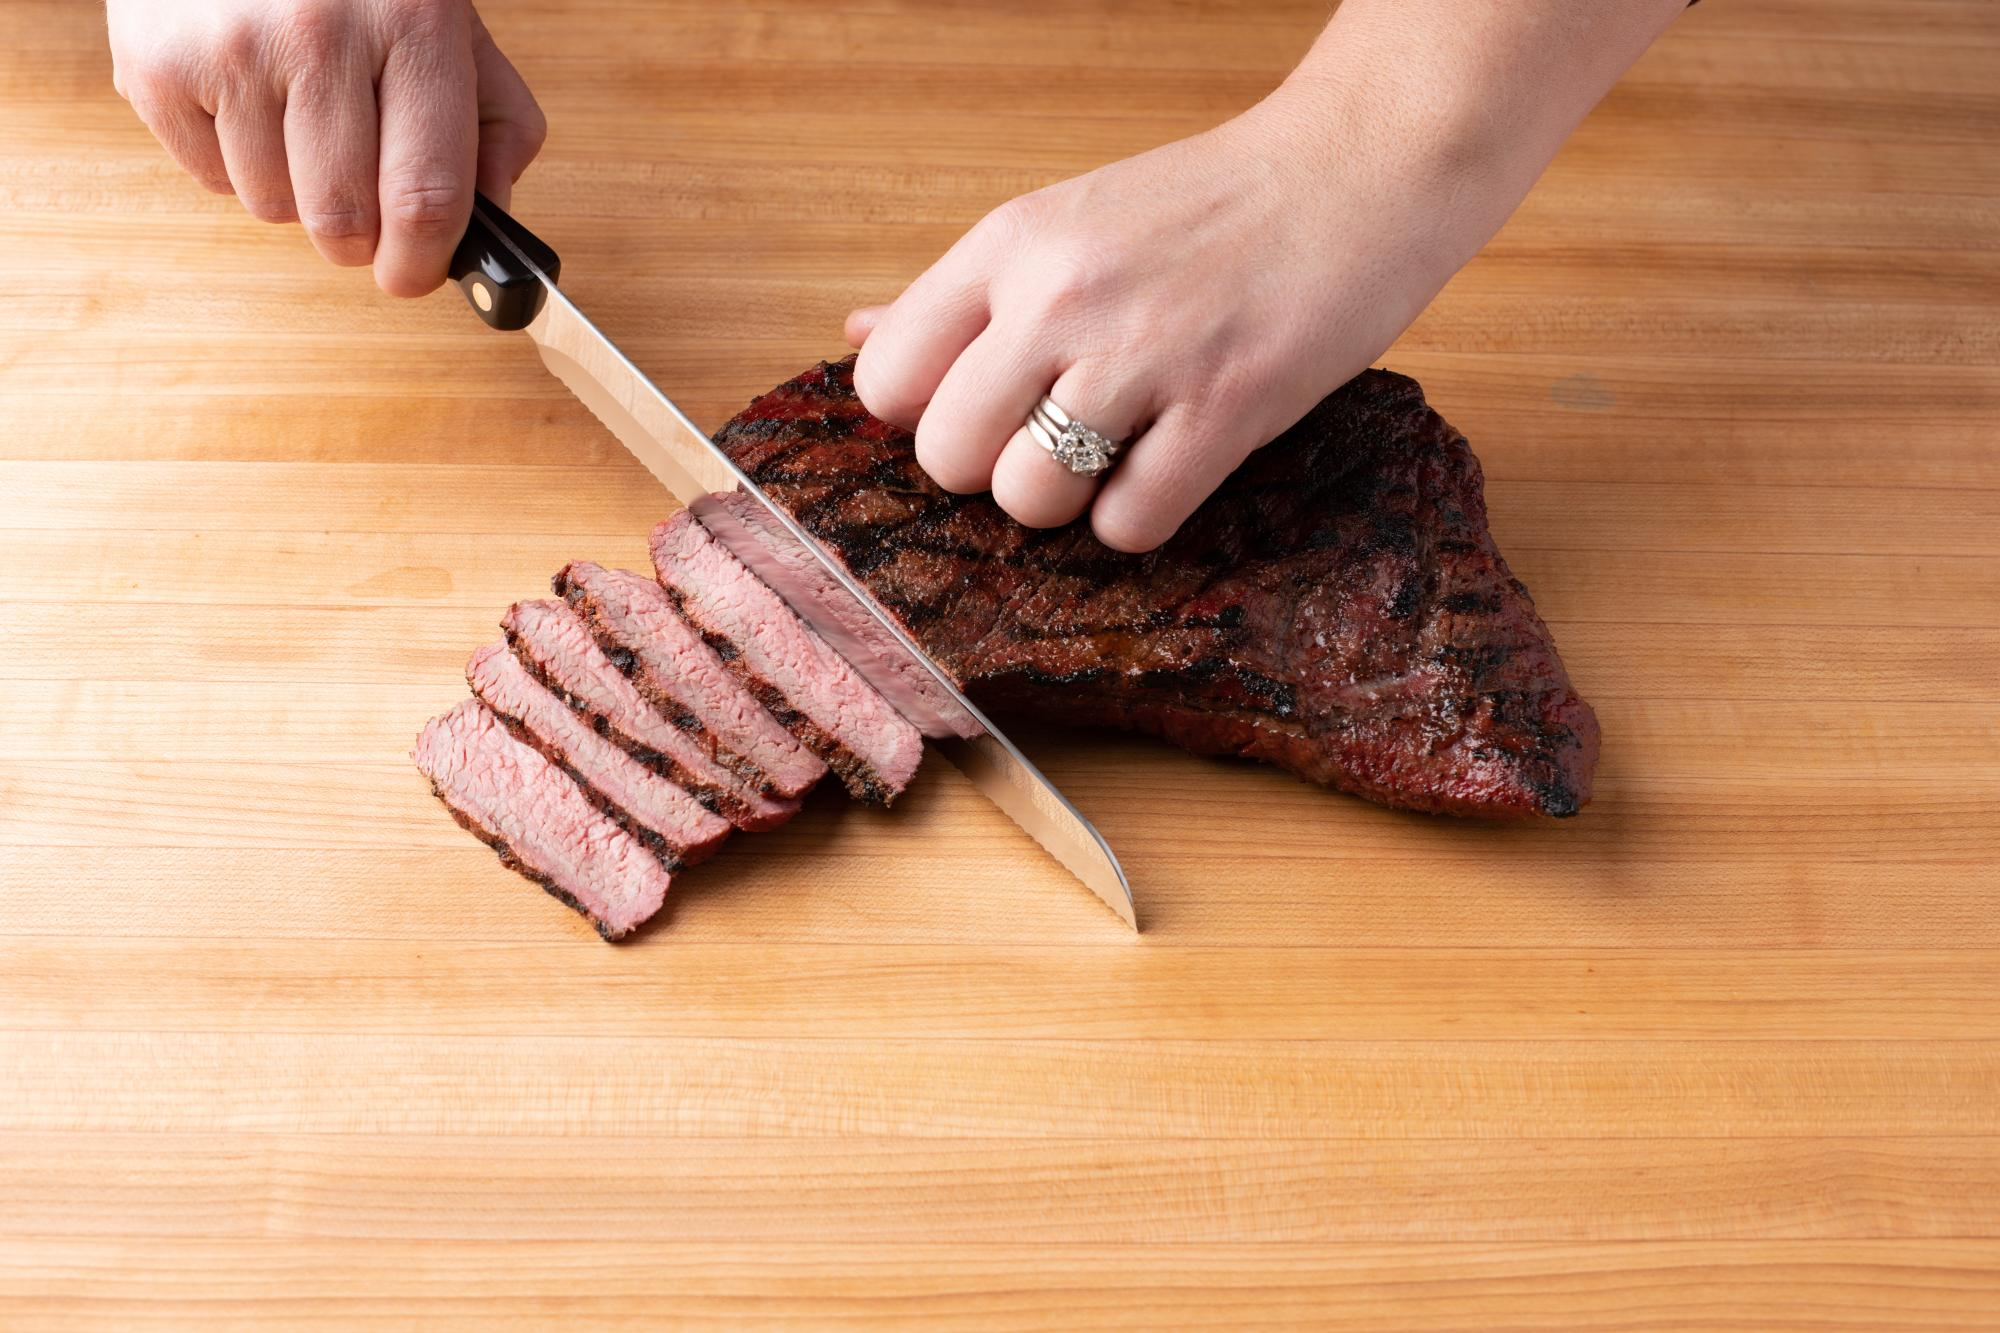 Santoku Style Carver is used to evenly slice the tri-tip